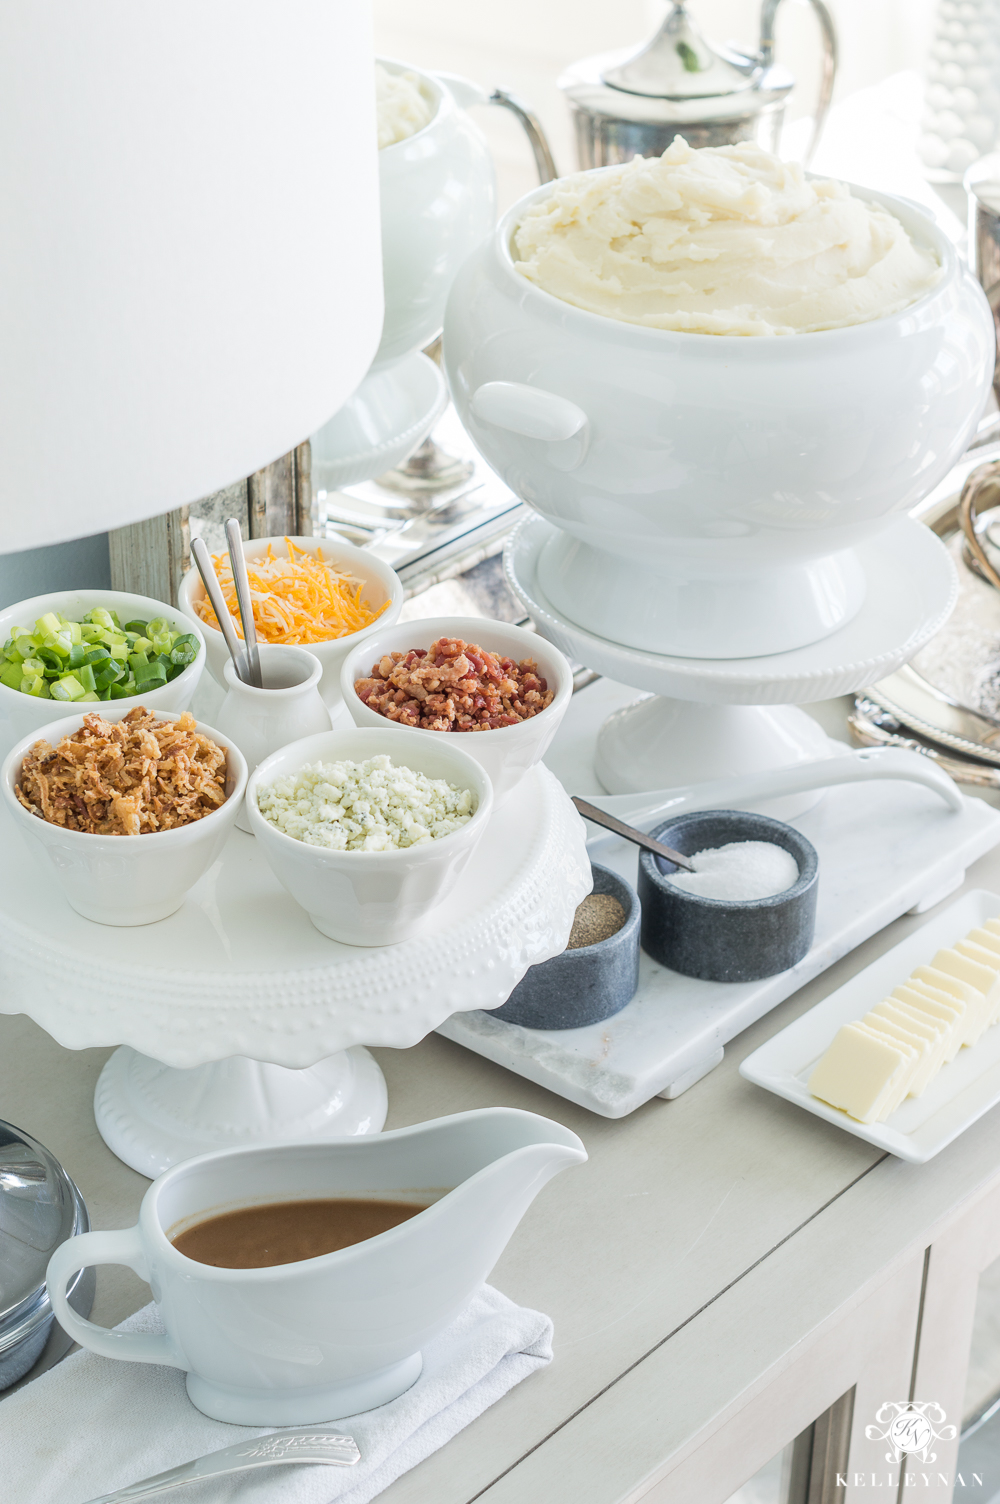 What to put on a mashed potato bar